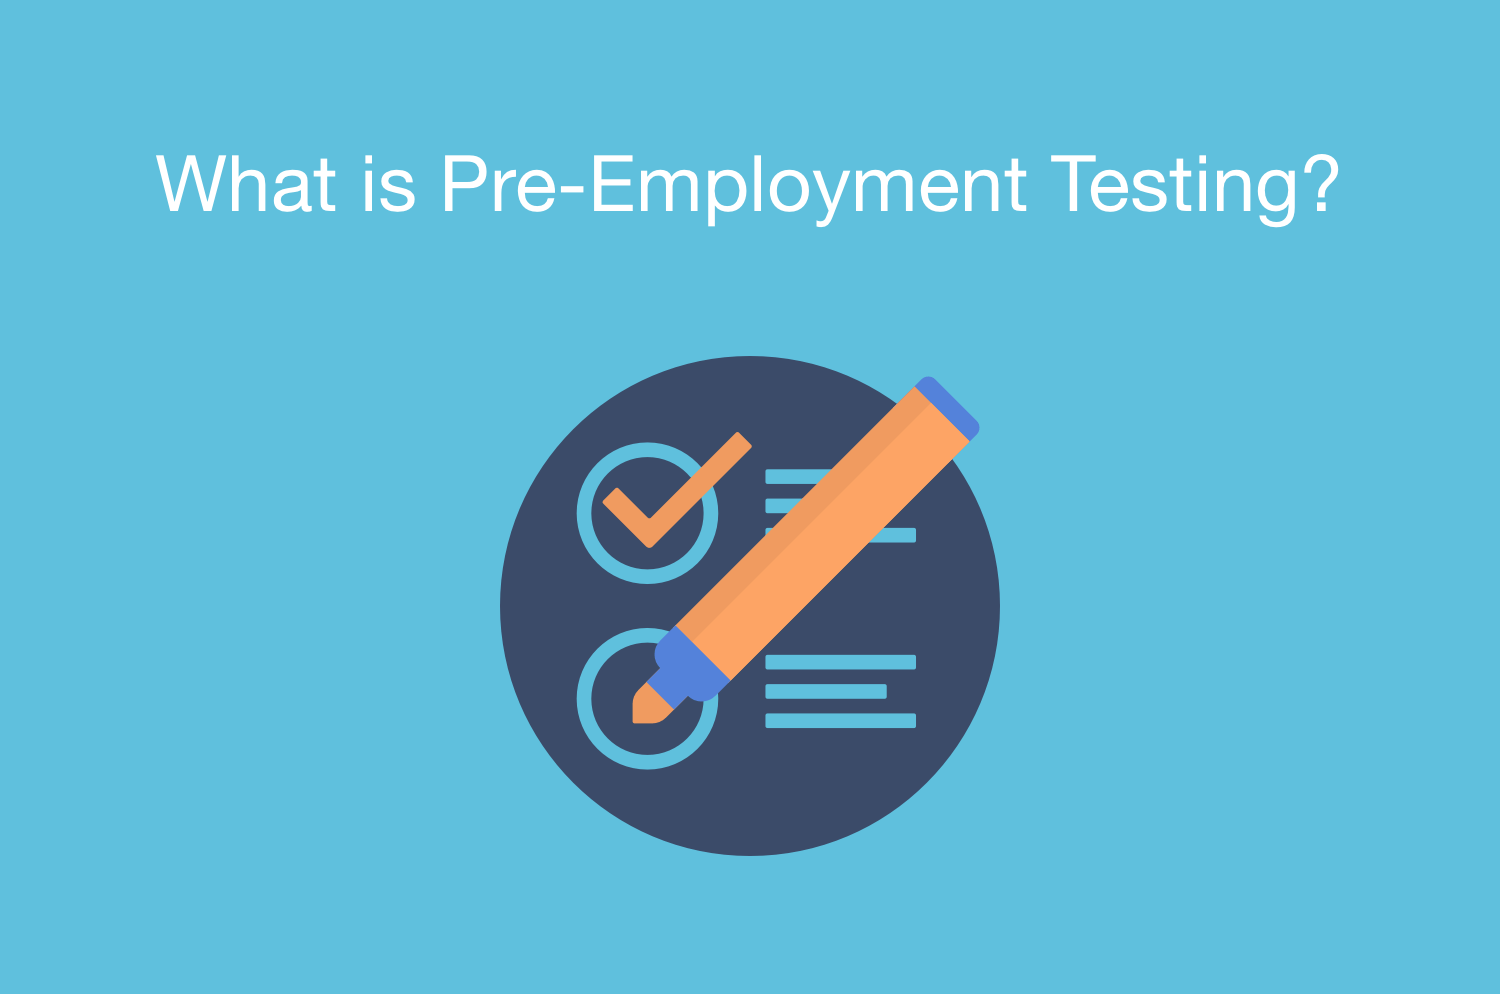 What is Pre-Employment Testing